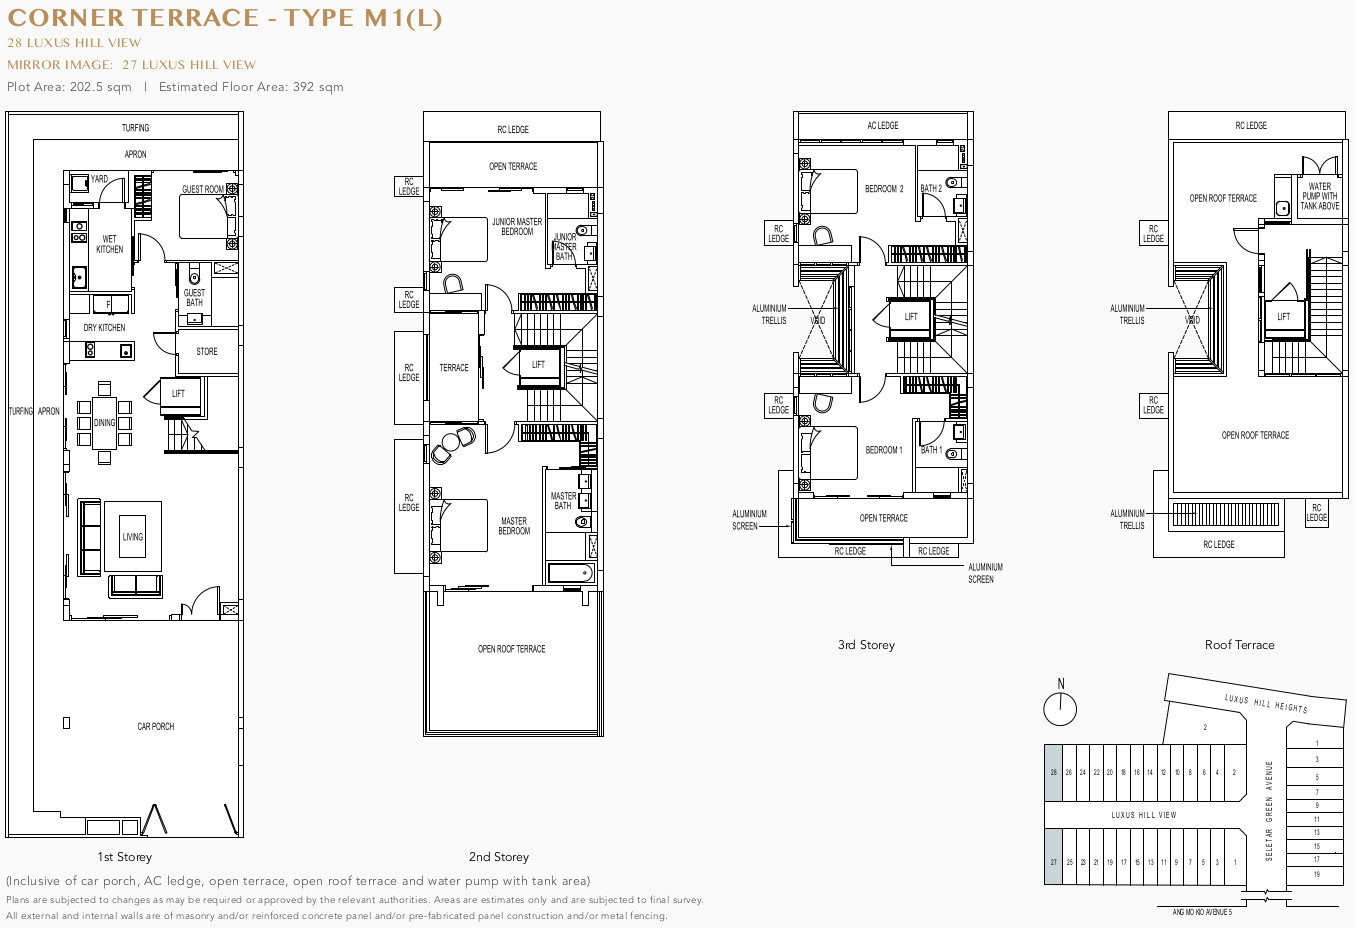 Luxus Hills Floor Plan . Corner Terrace Type M1